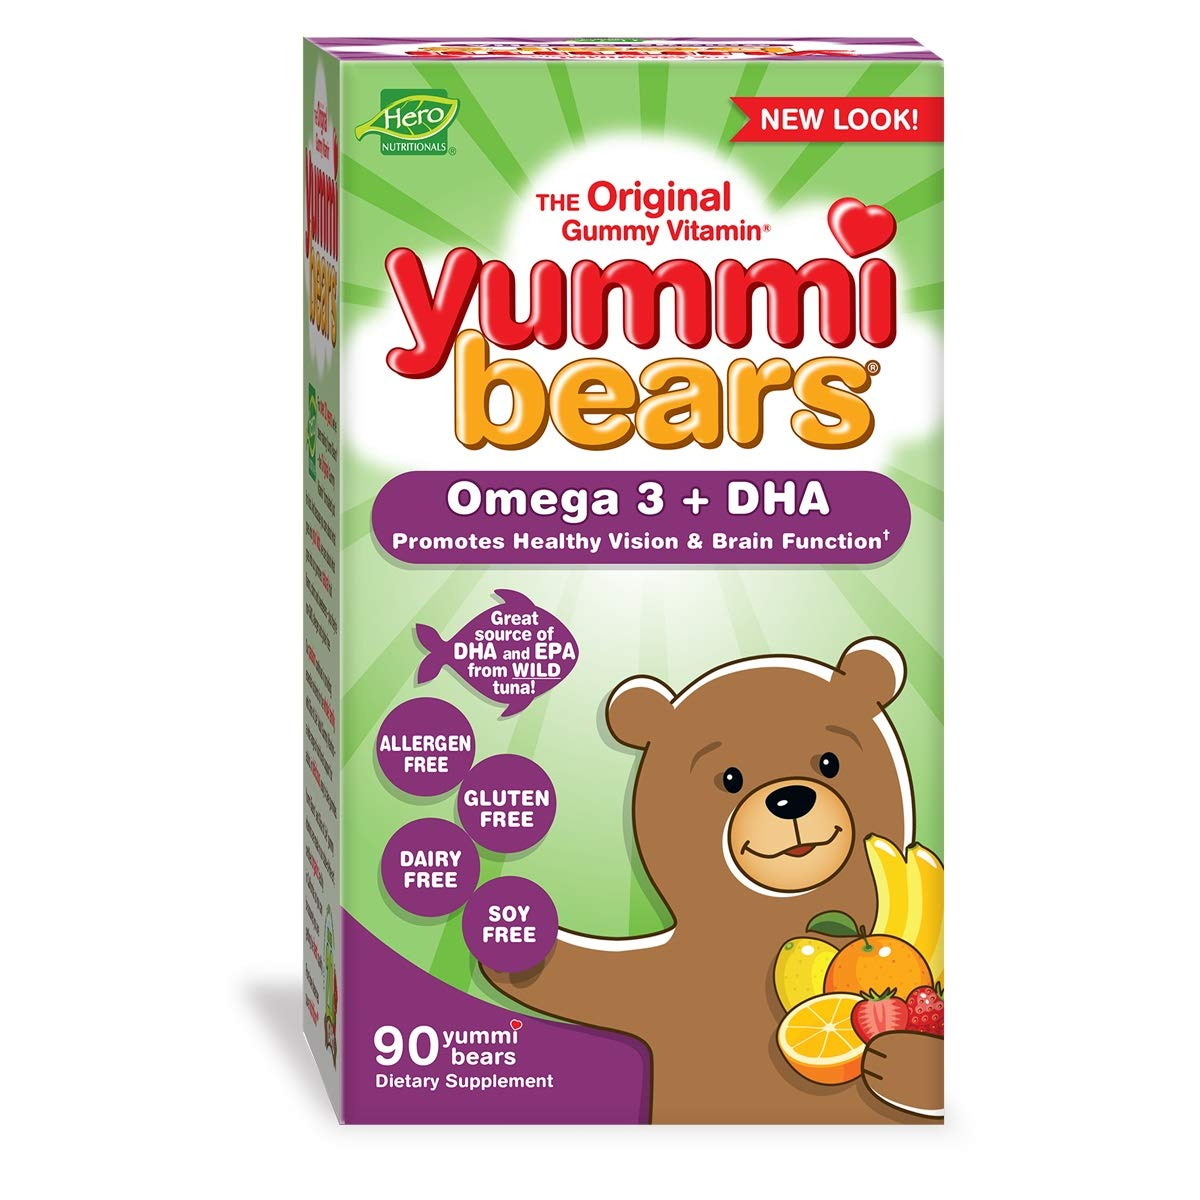 Yummi Bears Omega 3 + DHA Gummy Vitamin Supplement for Kids, 90 Gummies